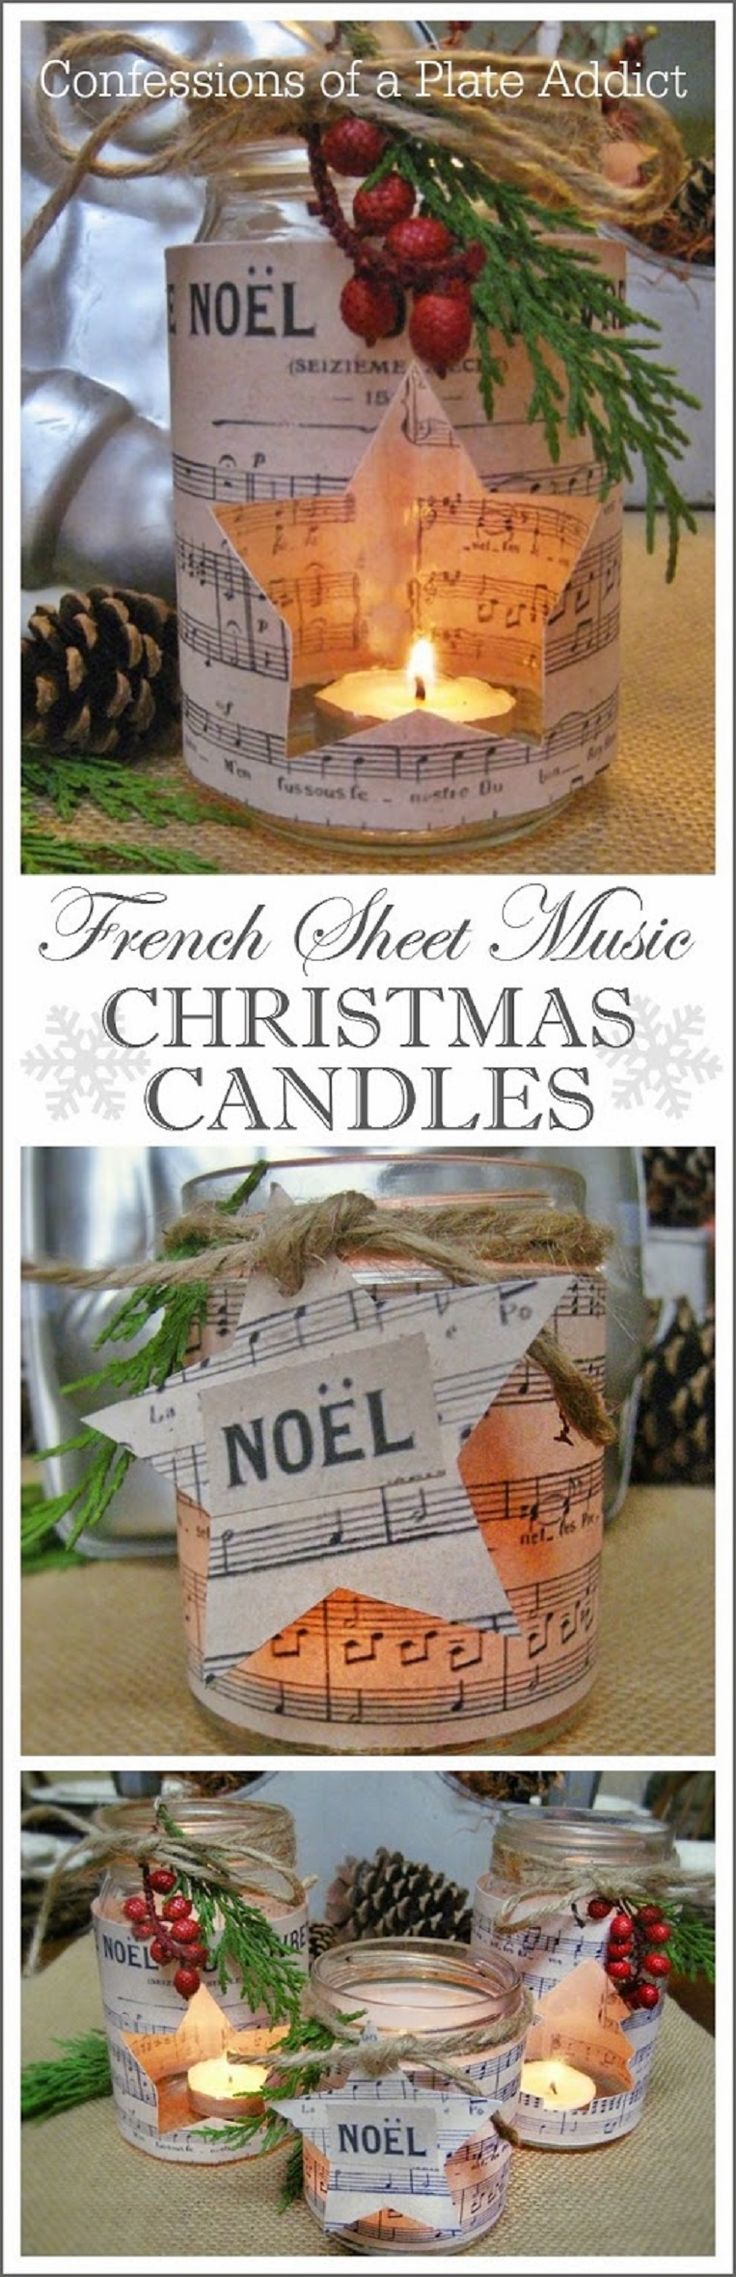 French Sheet Music Christmas Candles - 14 Crafty Ways to Dress Up Candles for Christmas | GleamItUp